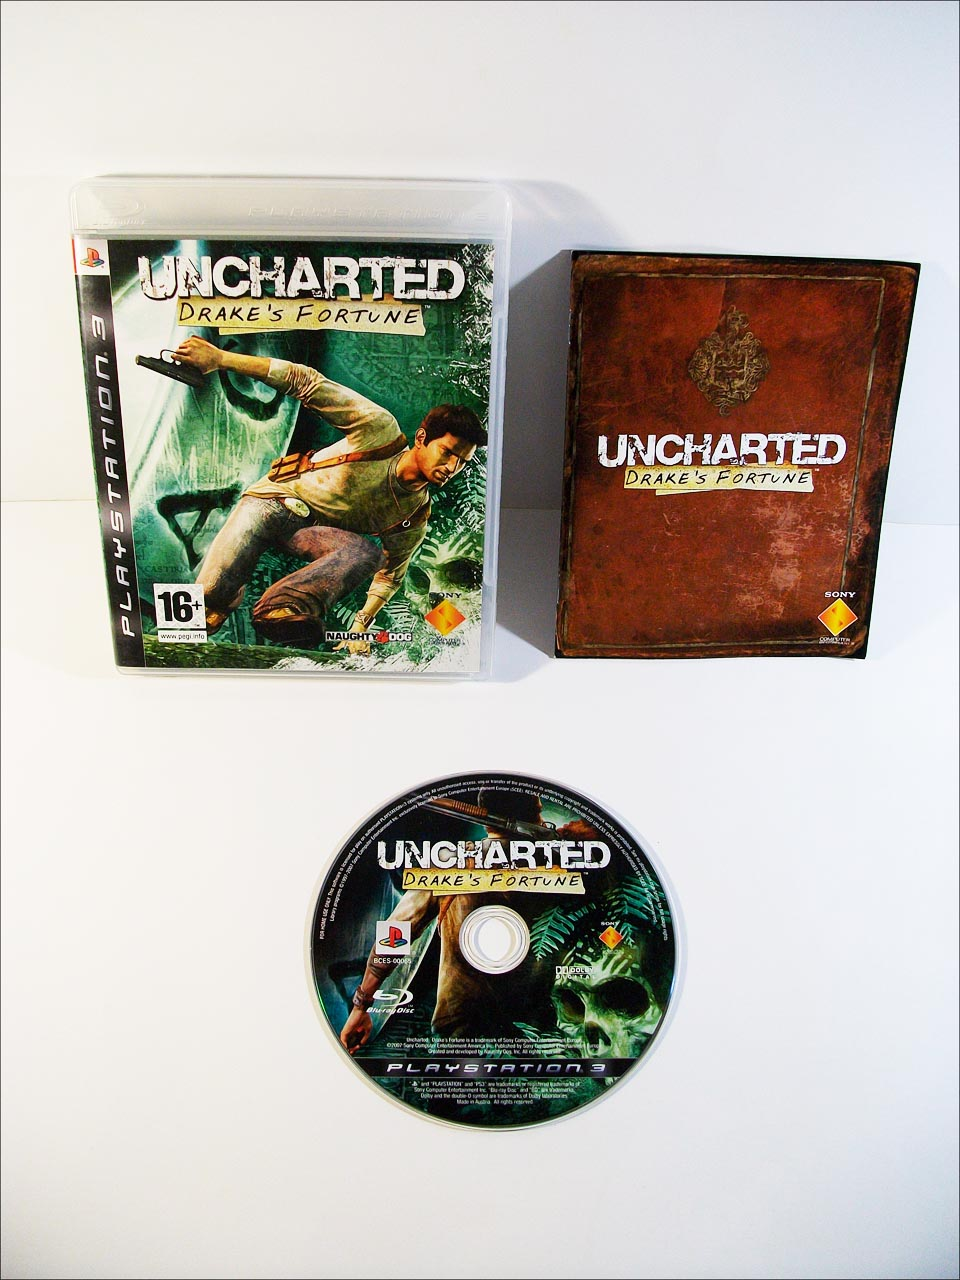 H2o's Collection [Multi] (M.A.J. au 27.11.11) Uncharted1